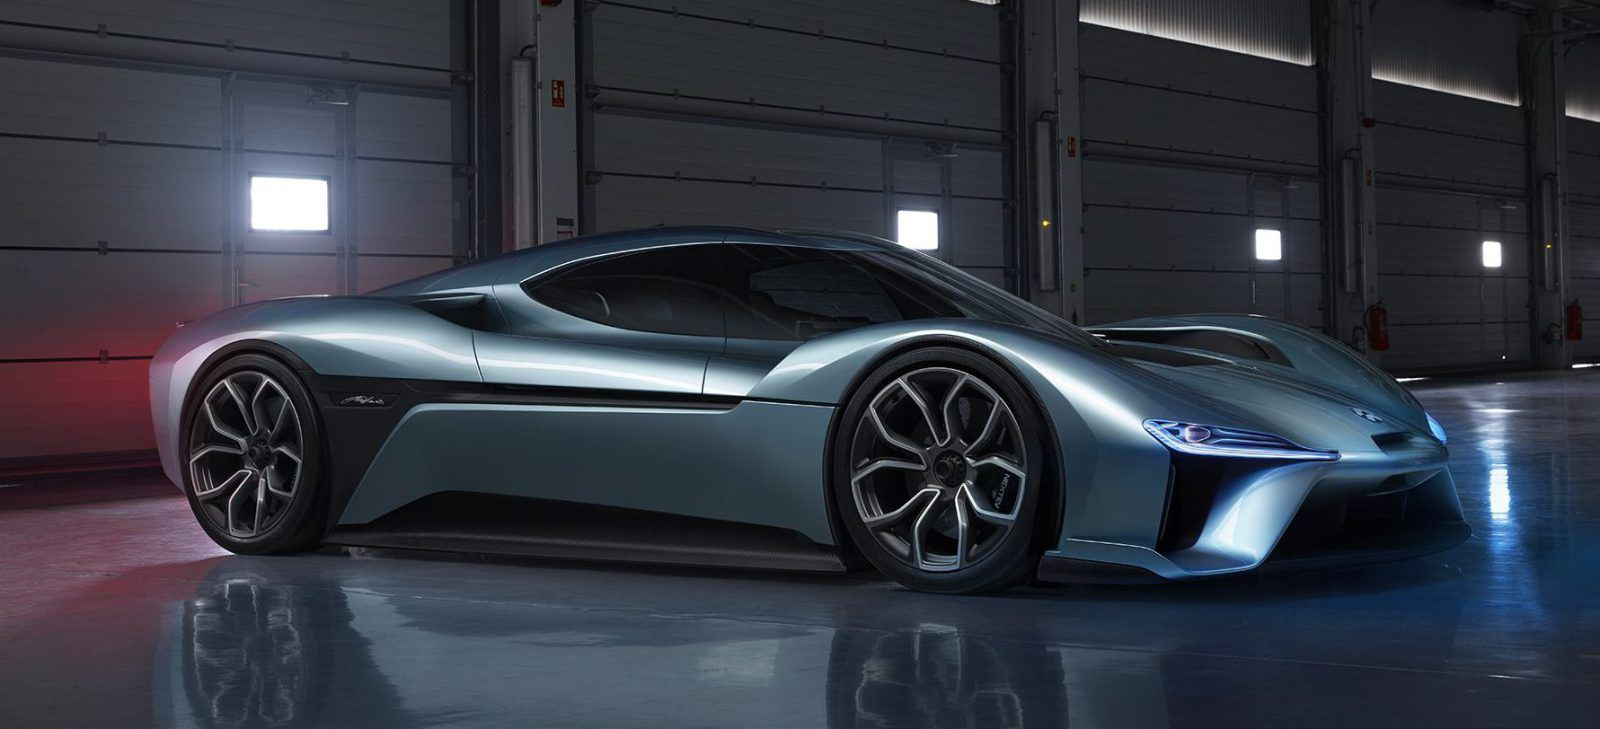 Nextev Launches New Brand Nio And Its First Electric Car 1 Mw Supercar With 265 Miles Range Top Speed Of 194 Mph Electrek Electric Cars Super Cars Fast Cars